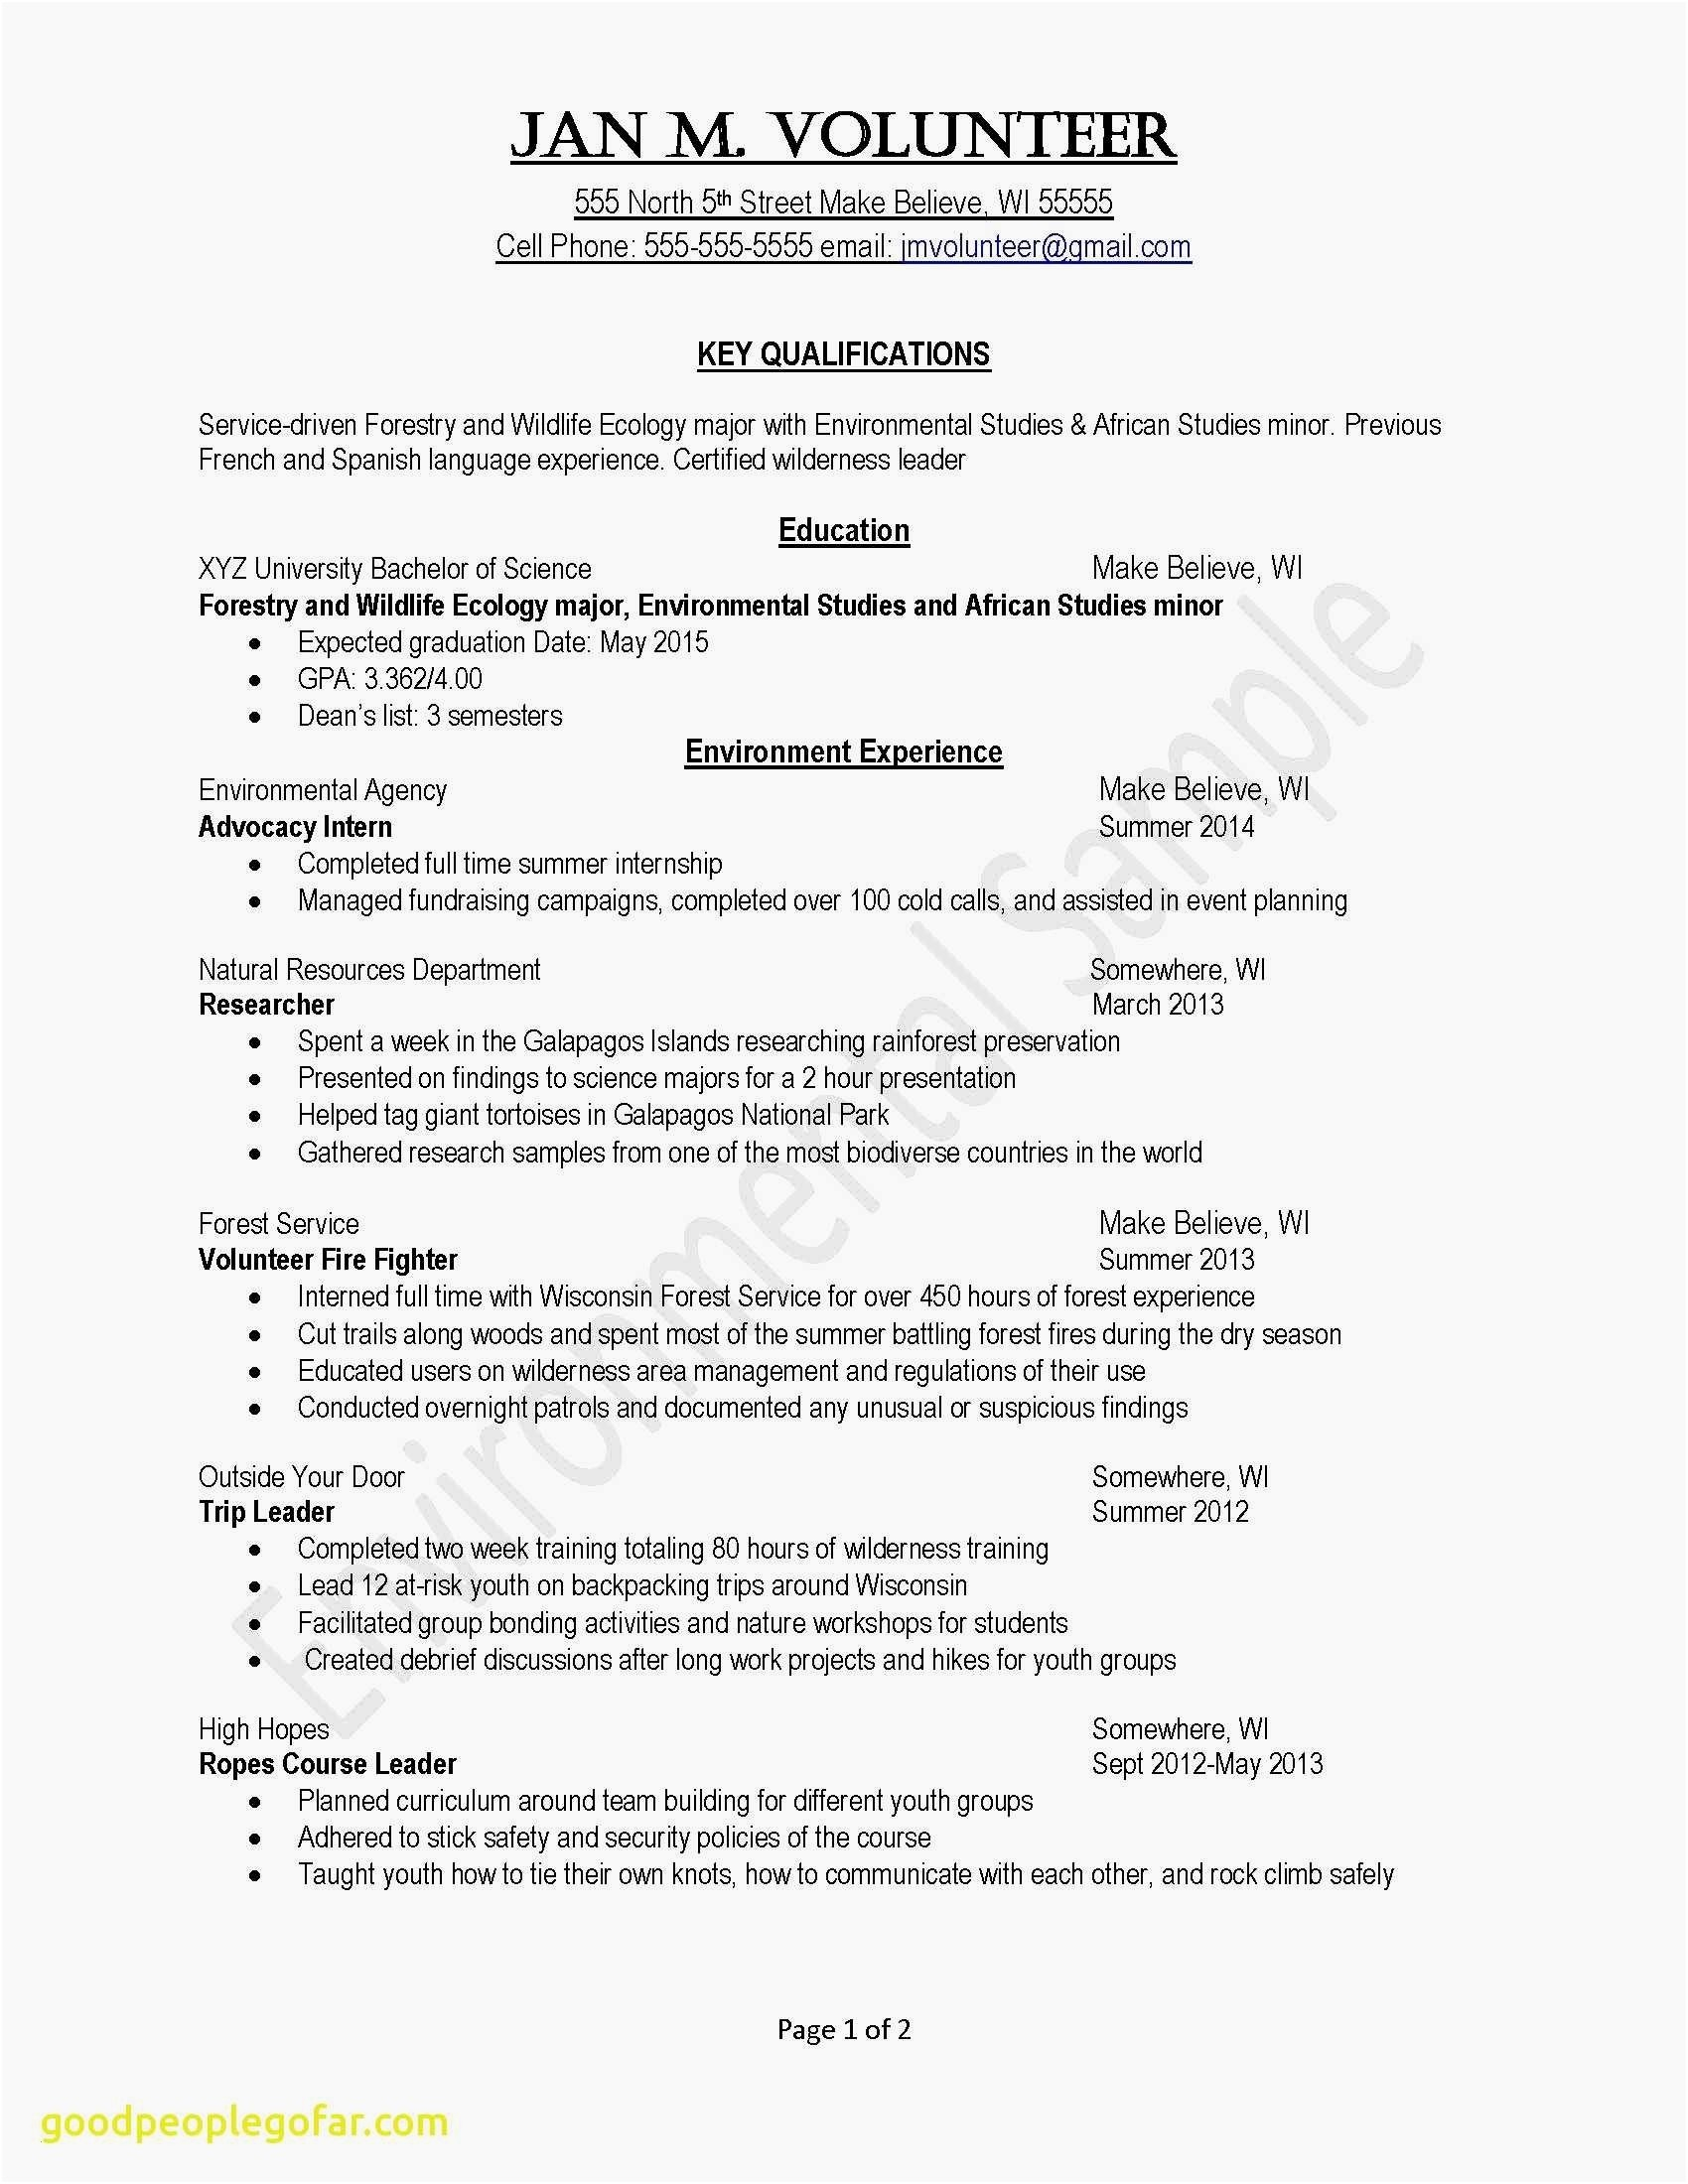 graphic design resume Collection-Graphic Designer Job Description Resume Fresh Lovely Examples Resumes Ecologist Resume 0d Graphic Design Resumes 7-l